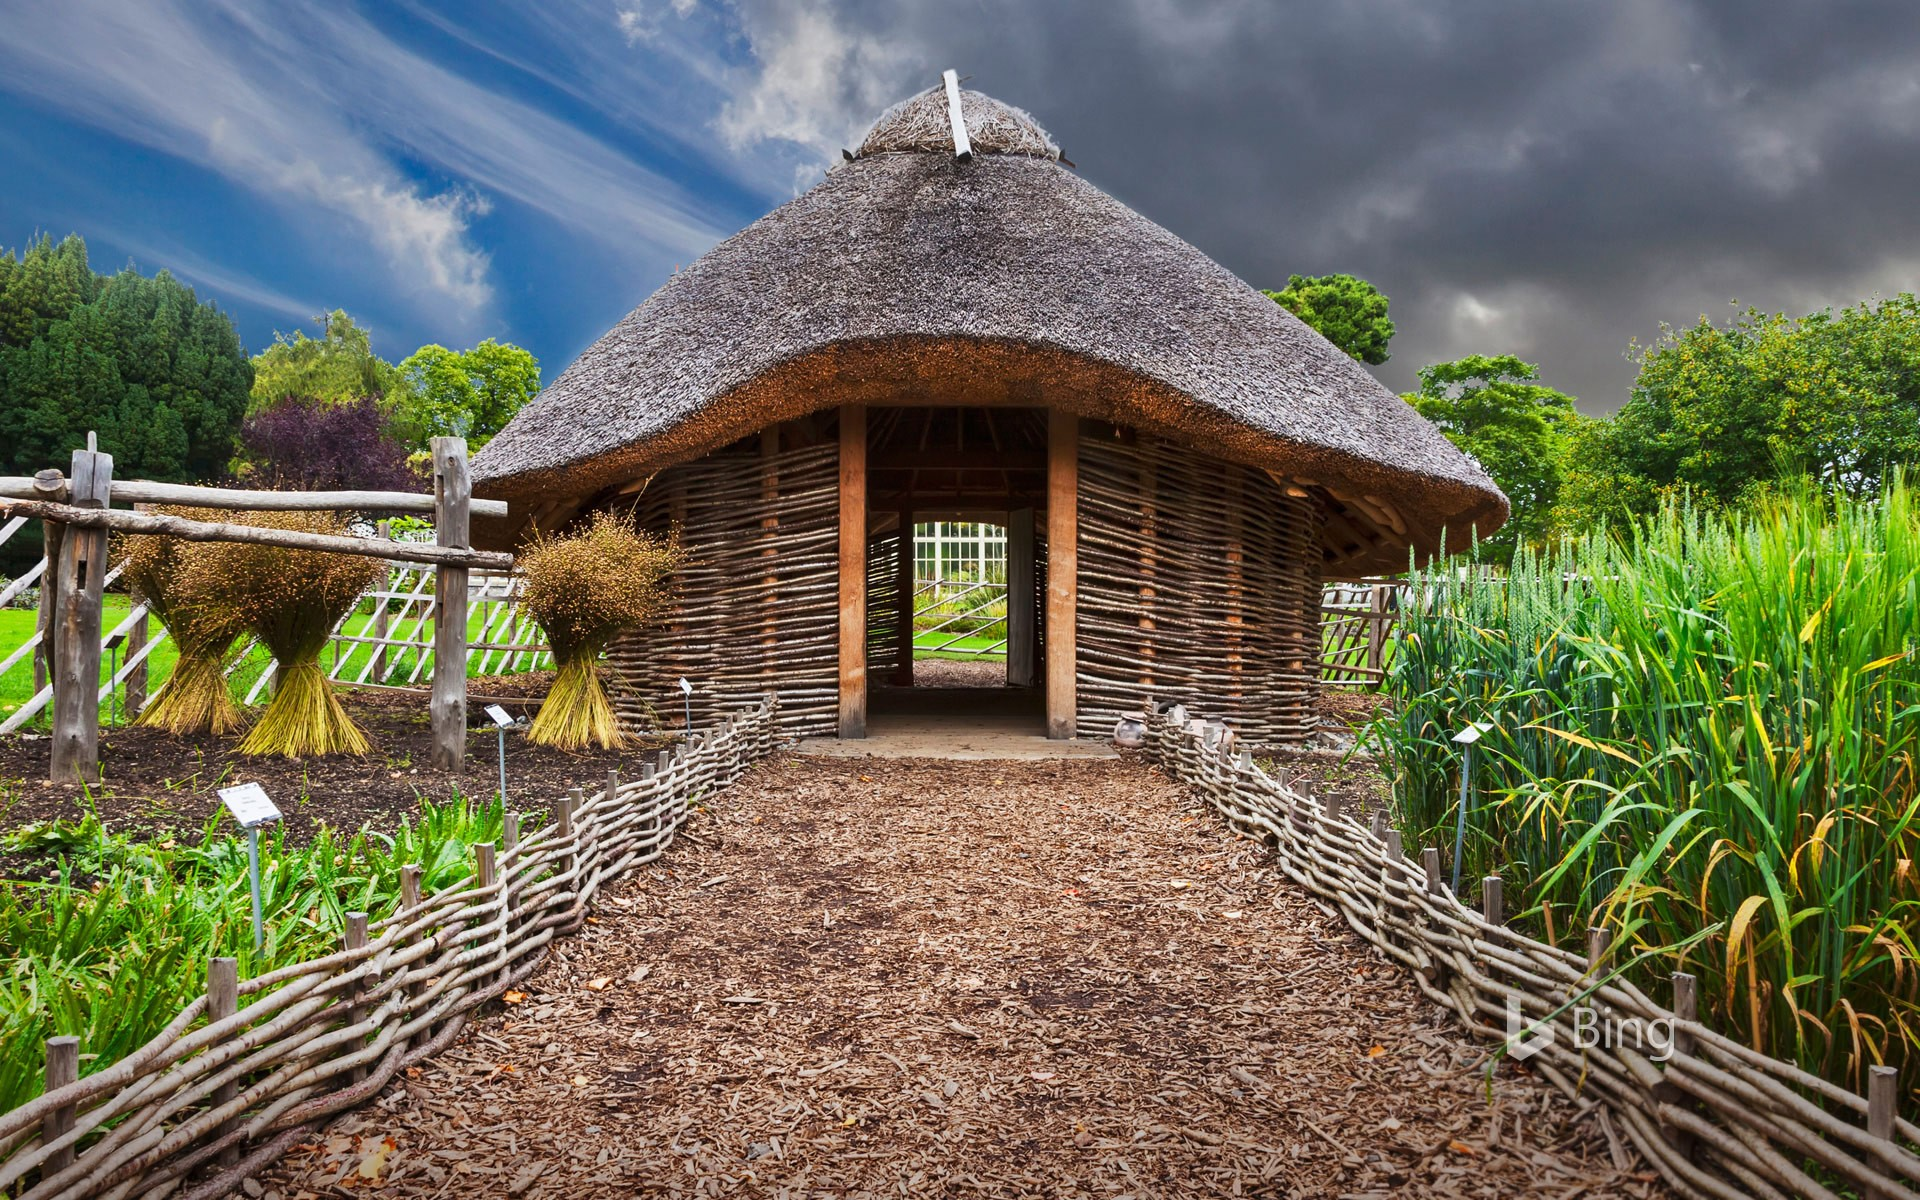 Replica of a Viking home in Dublin National Botanic Gardens, Ireland